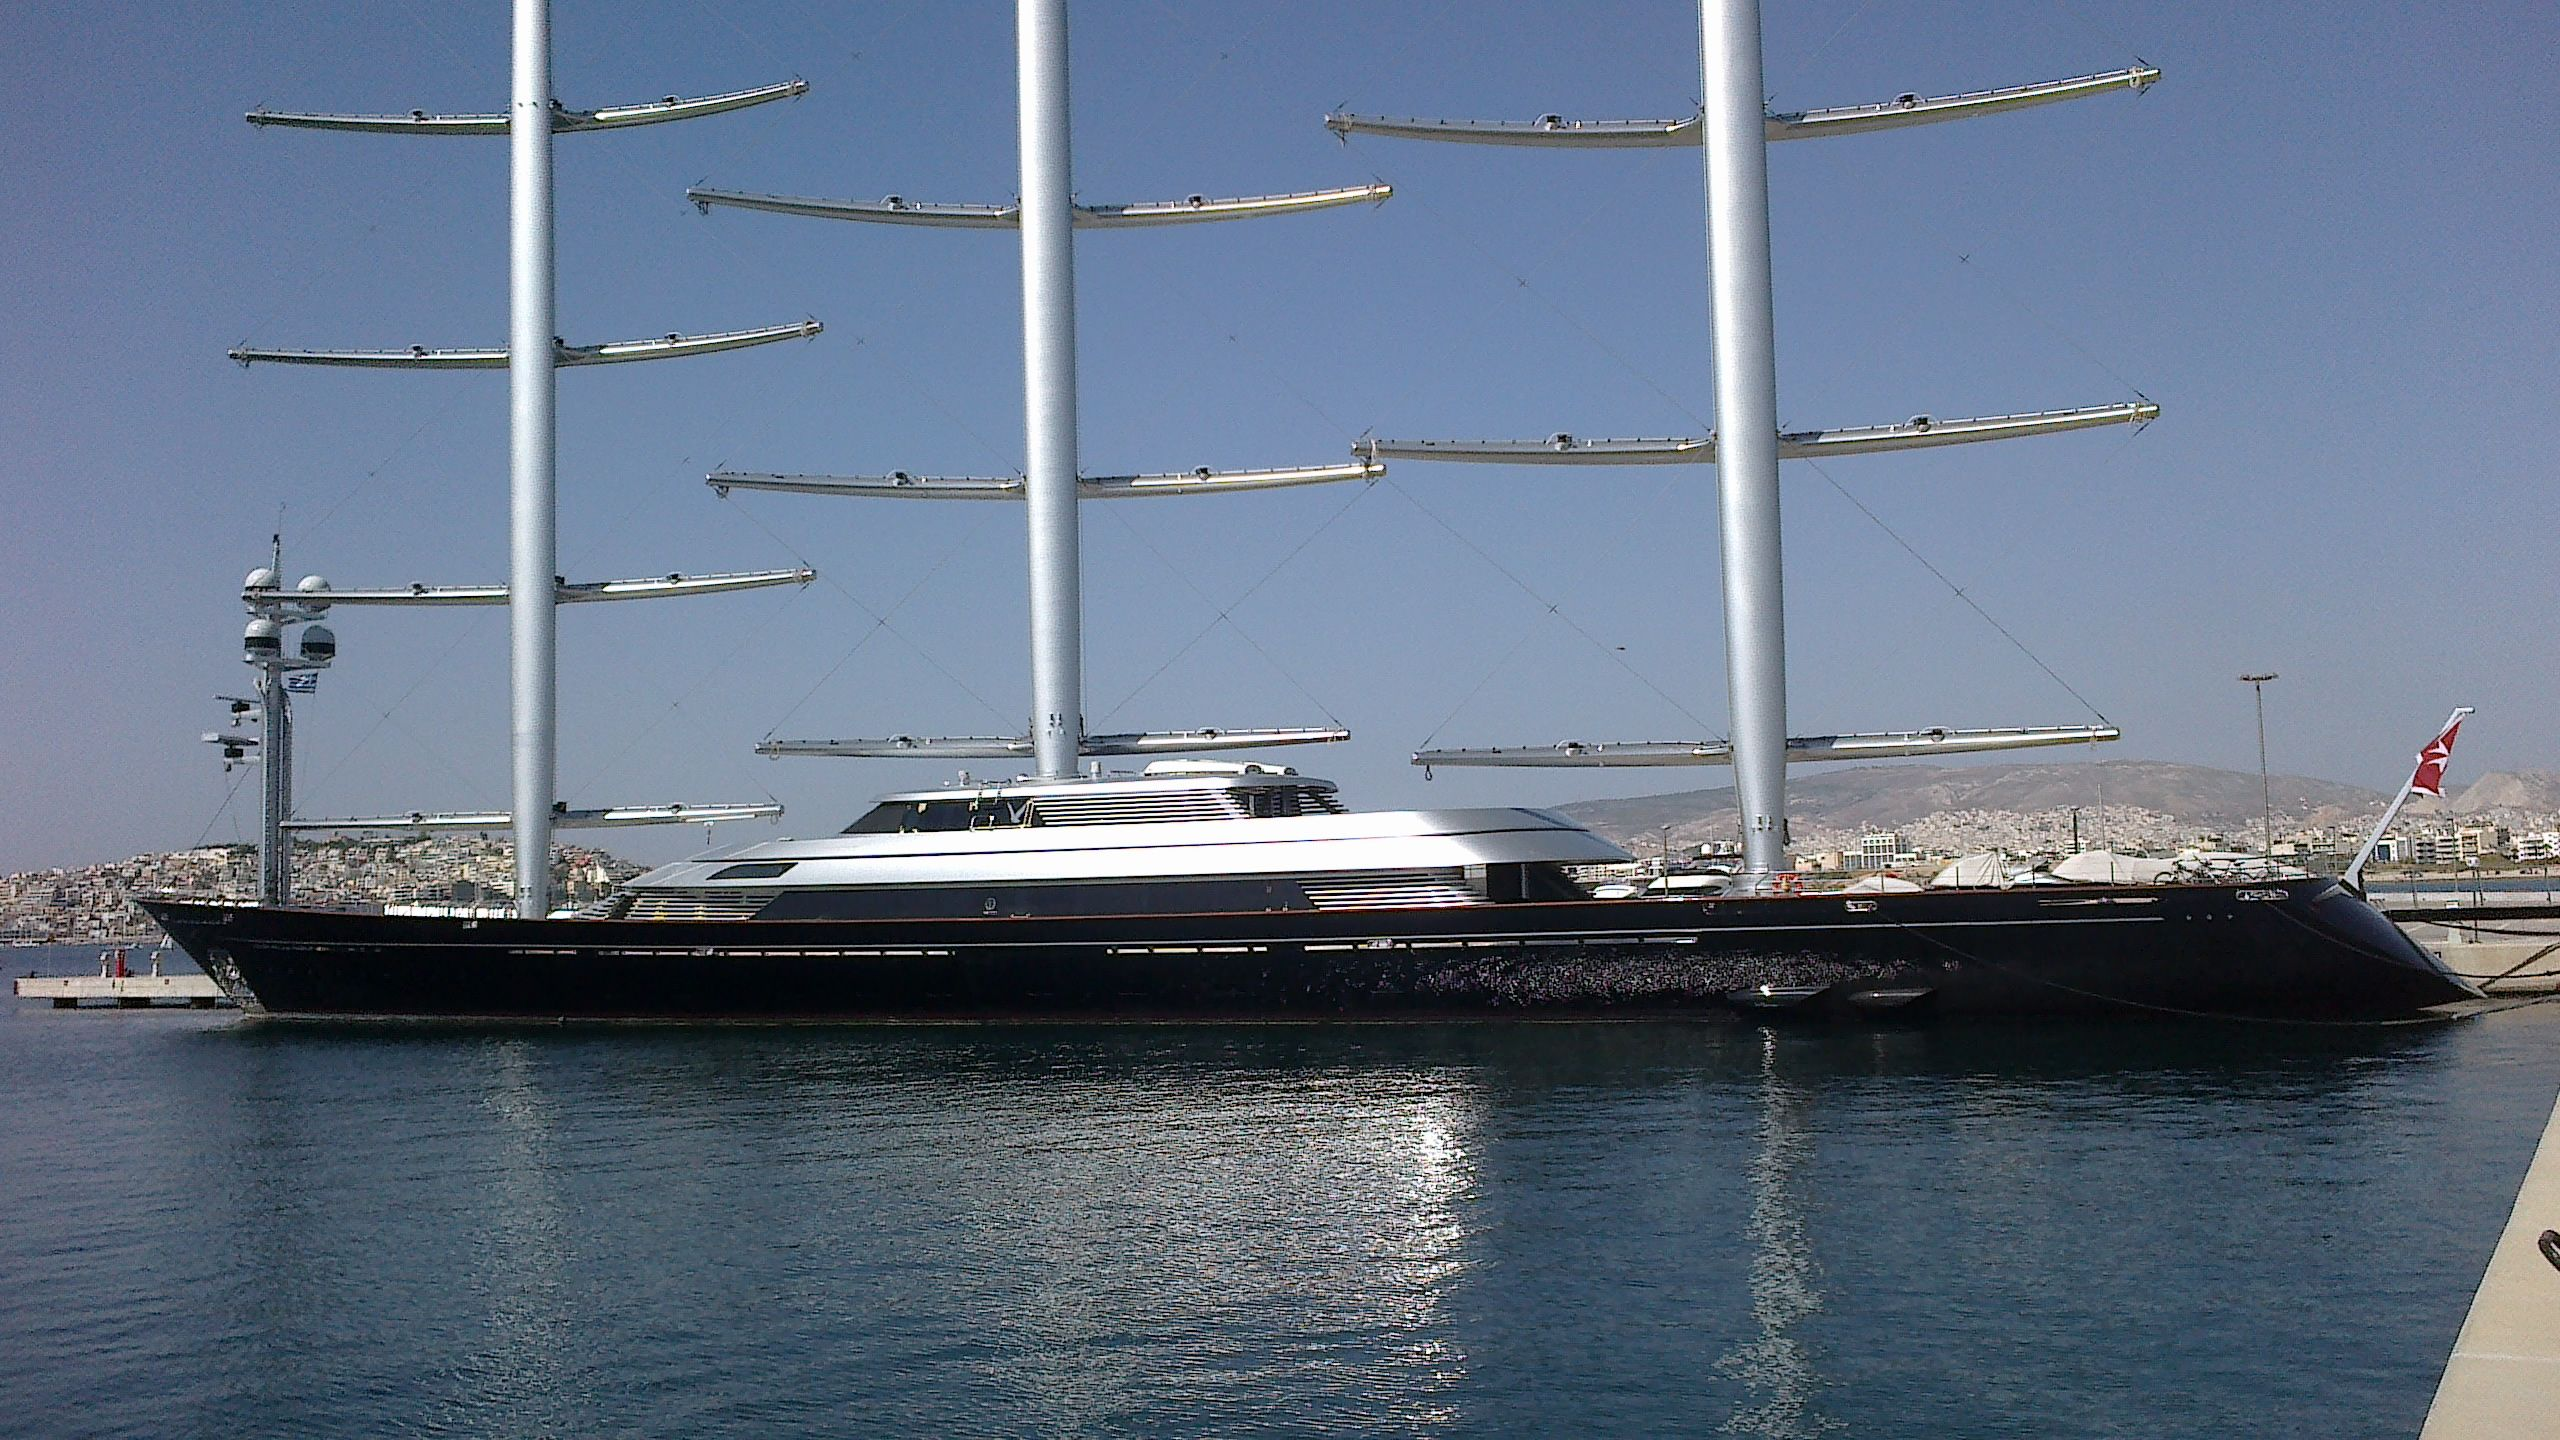 S Y Maltese Falcon Is Not A Classic Yacht She S A New Class Of